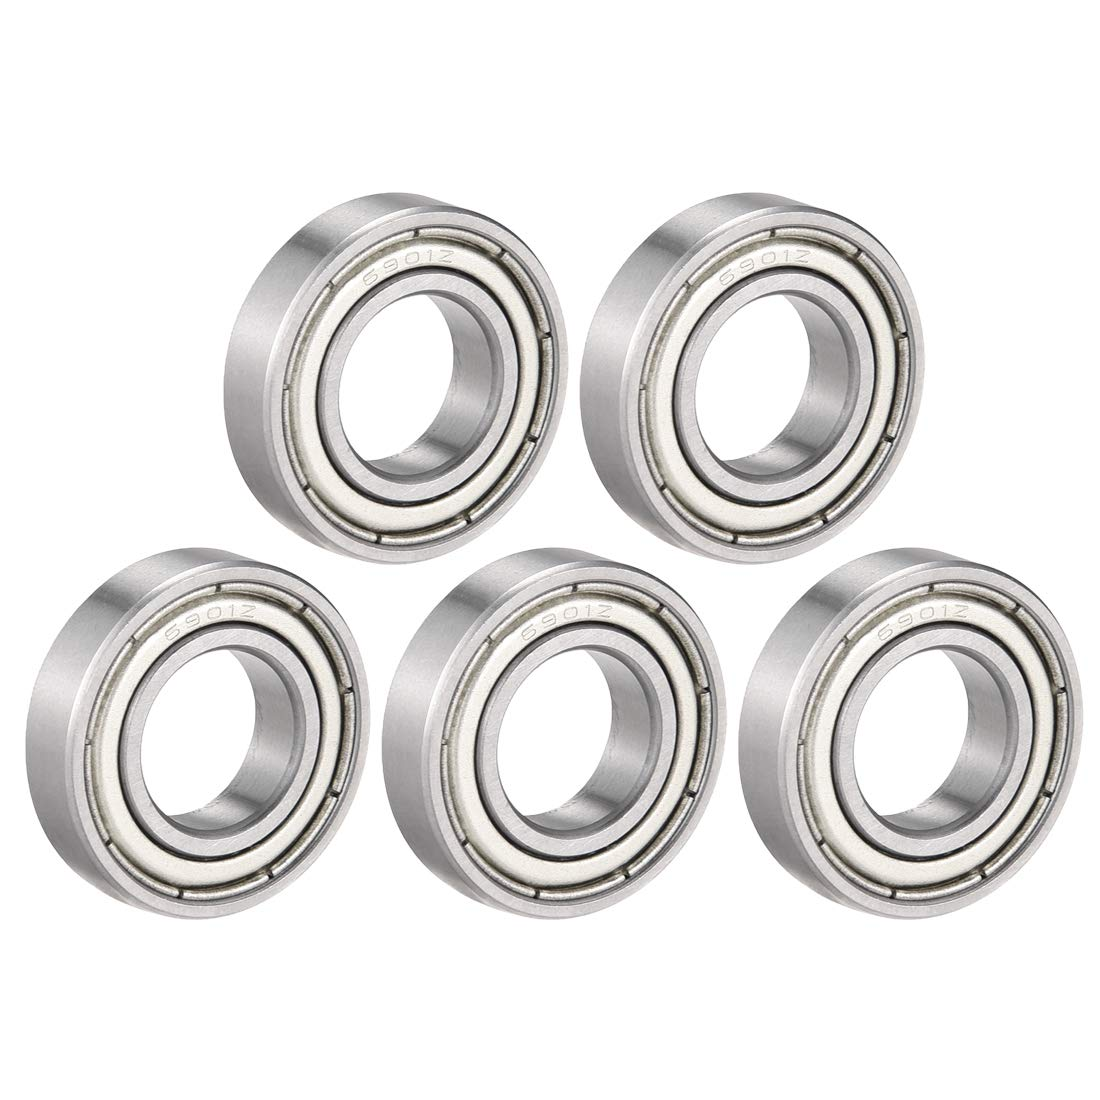 uxcell 42mm x 25mm x 9mm Silver Tone Deep Groove 6905RS Ball Bearing Replacement